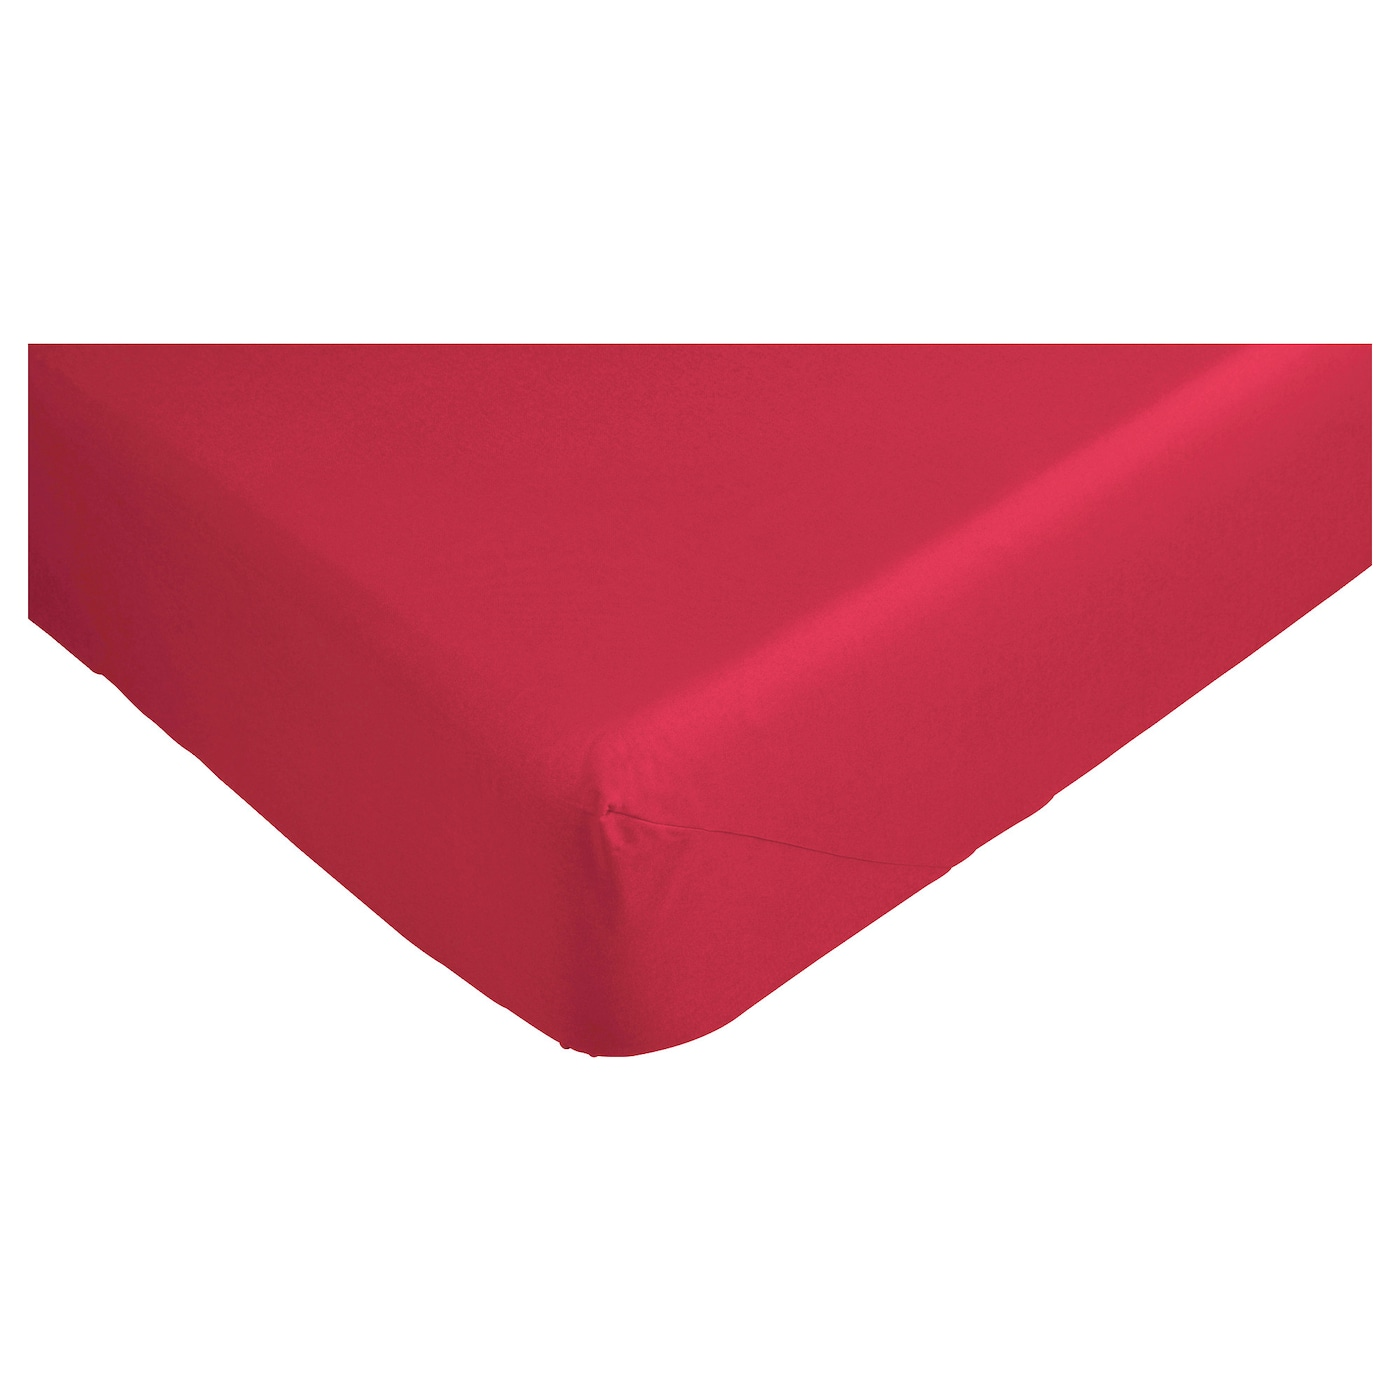 Dvala fitted sheet red single ikea for Drap housse ikea